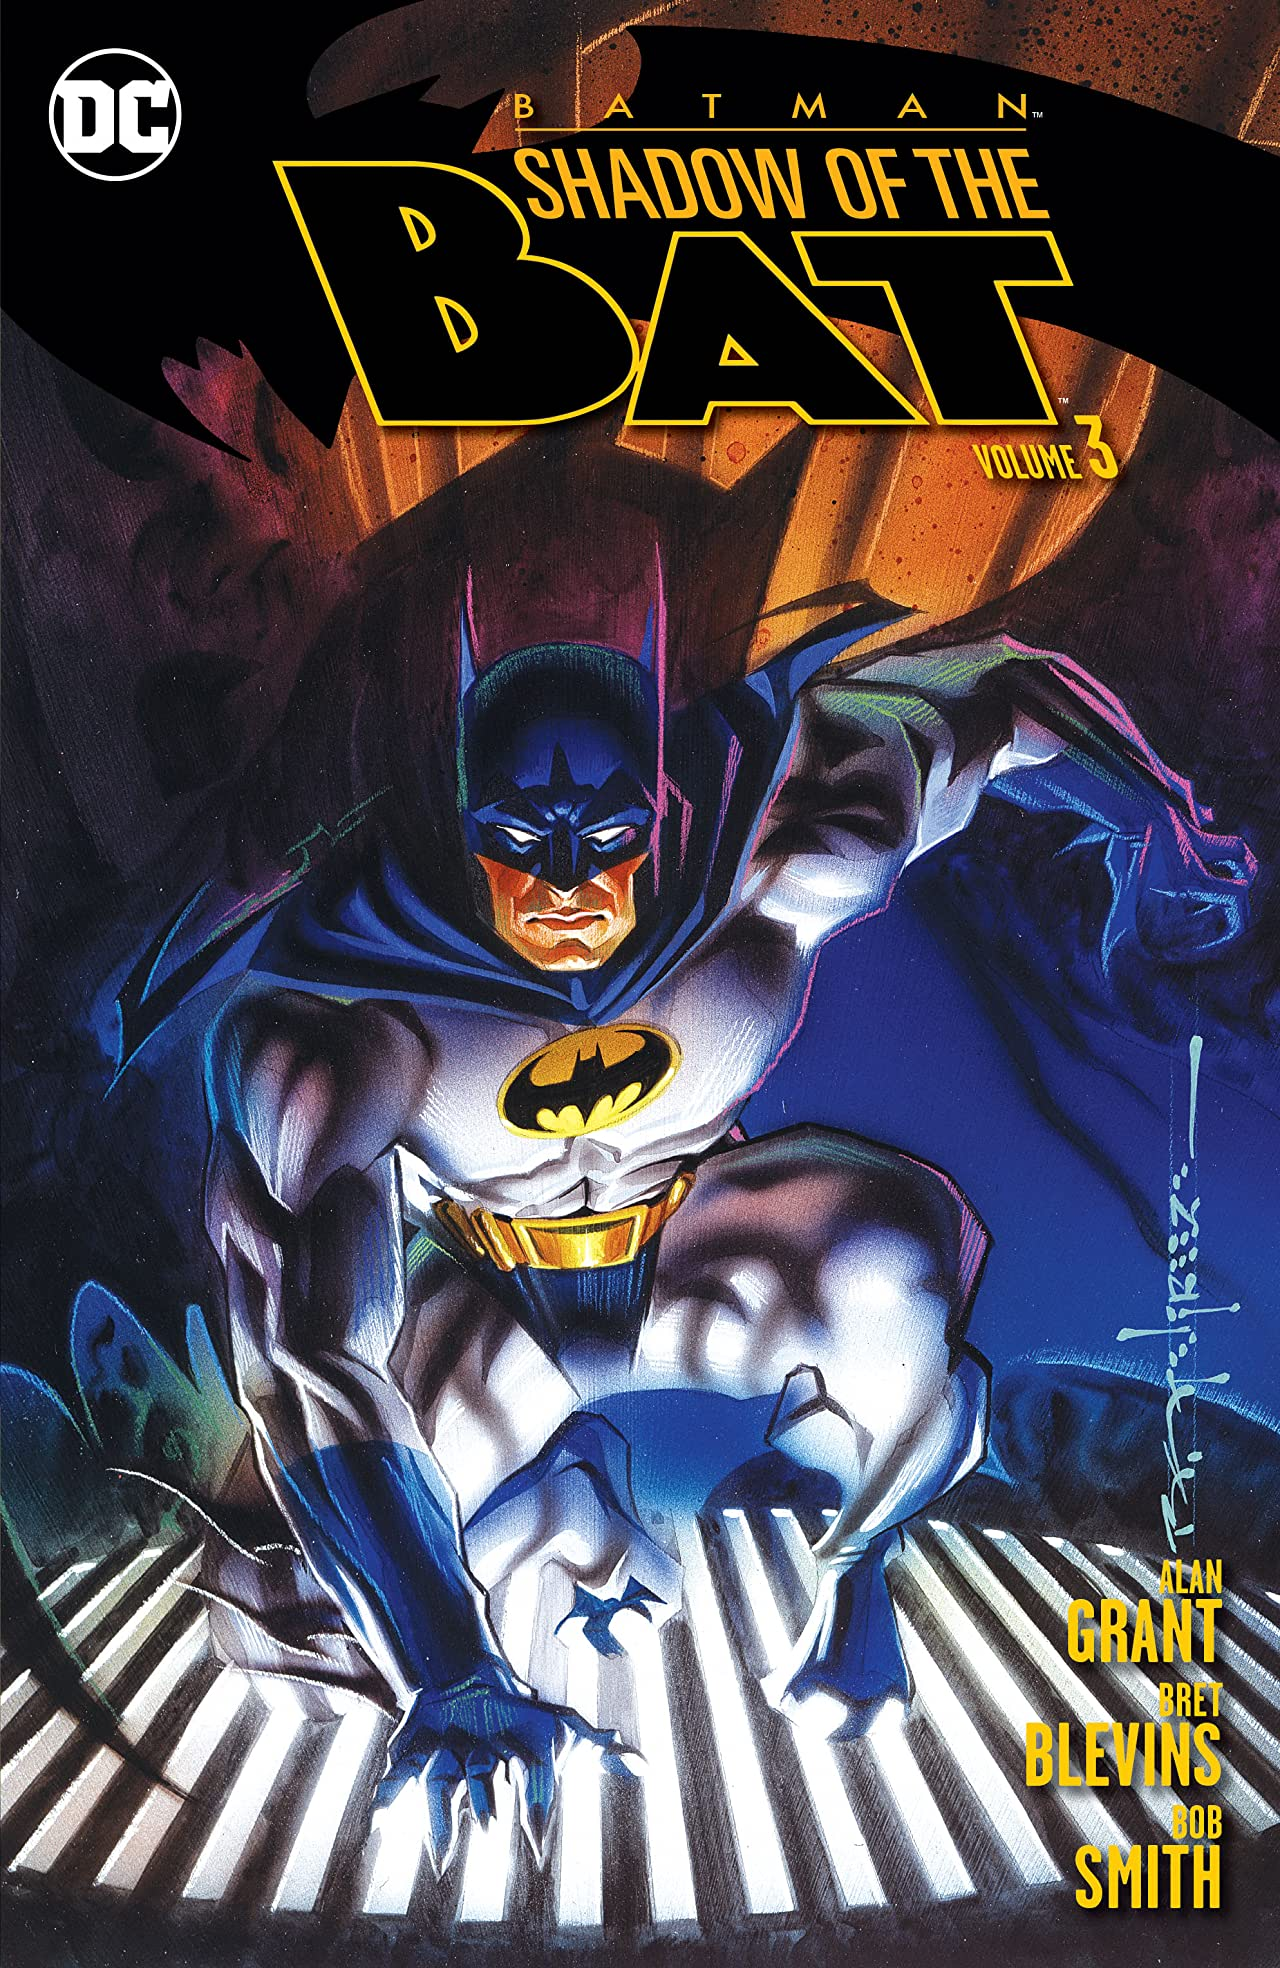 Batman: Shadow of the Bat Vol. 3